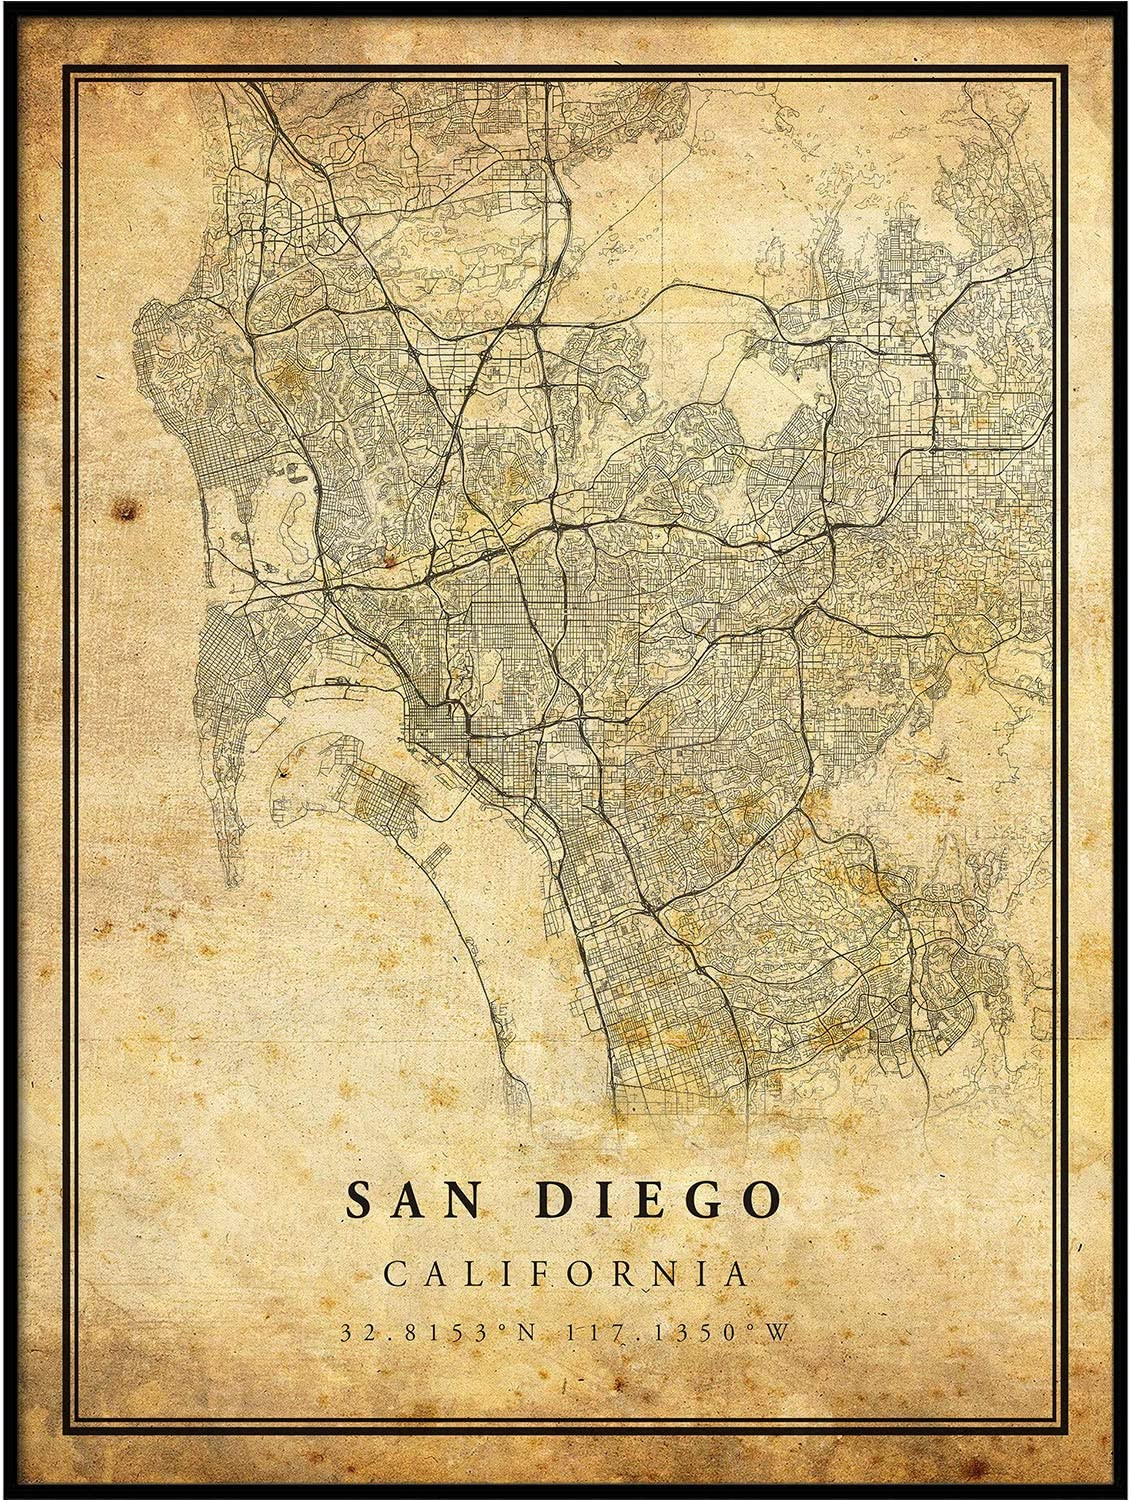 San Diego map Vintage Style Poster Print | Old City Artwork Prints | Antique Style Home Decor | California Wall Art Gift | Vintage map Wedding 16x20